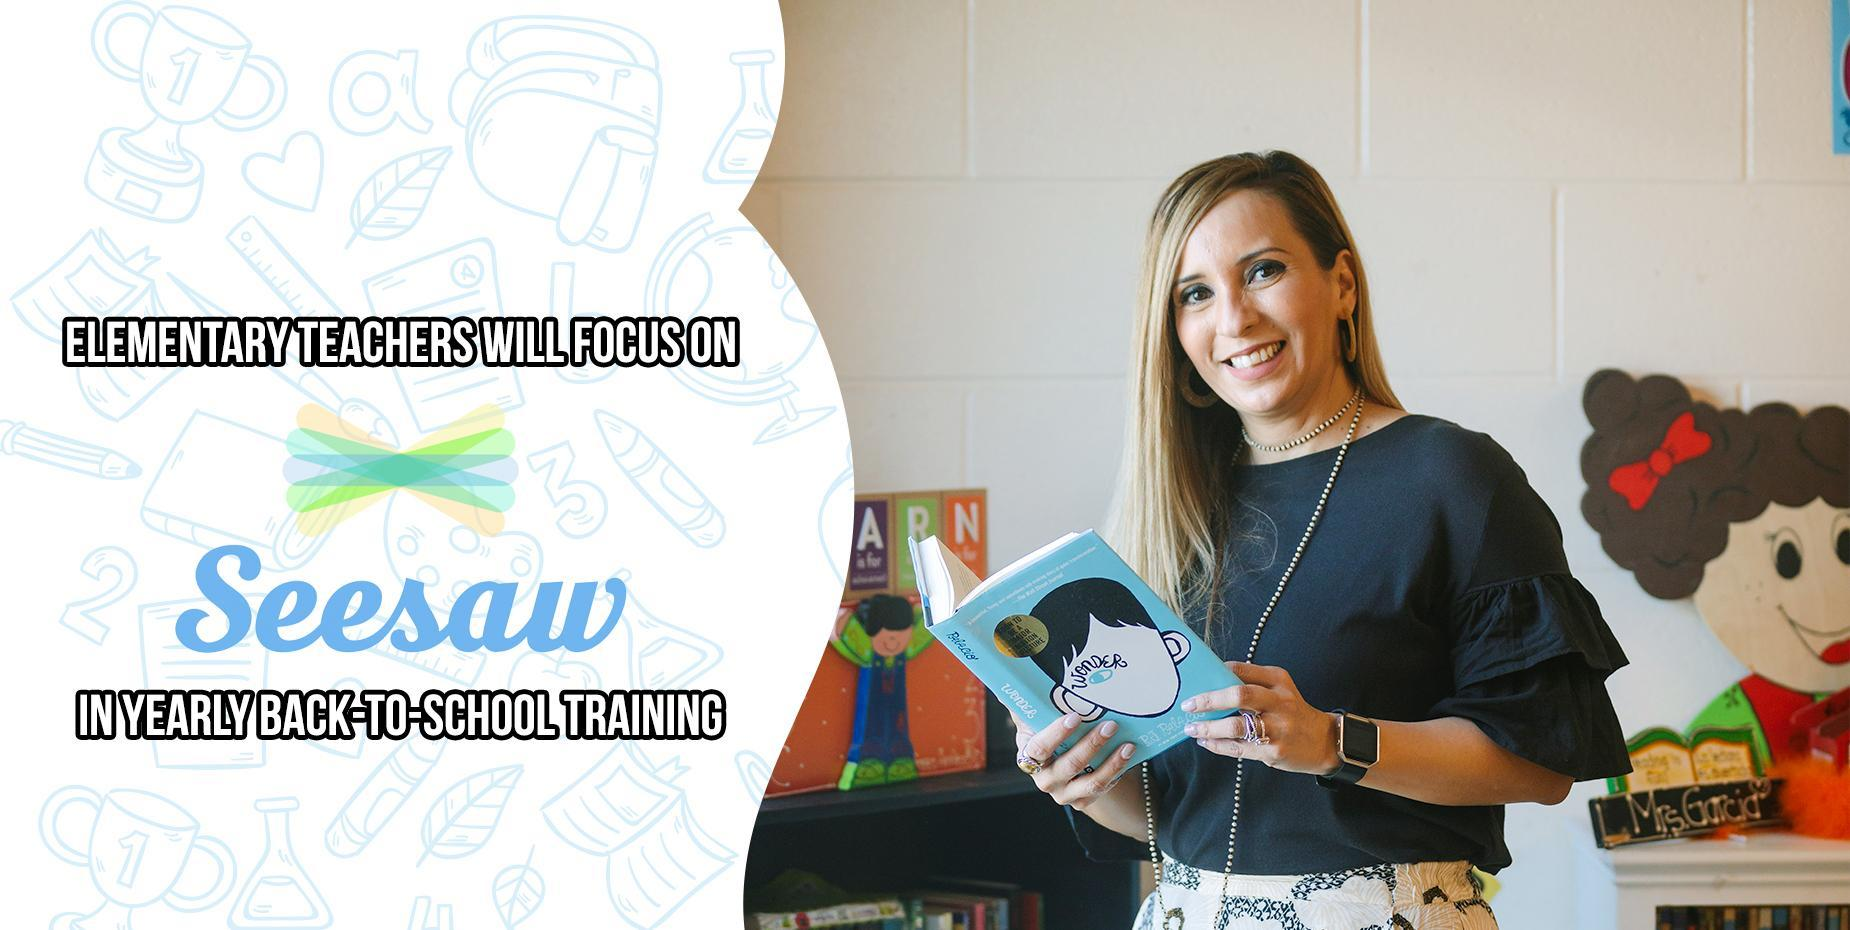 Elementary teachers will focus on Seesaw in yearly back-to-school training